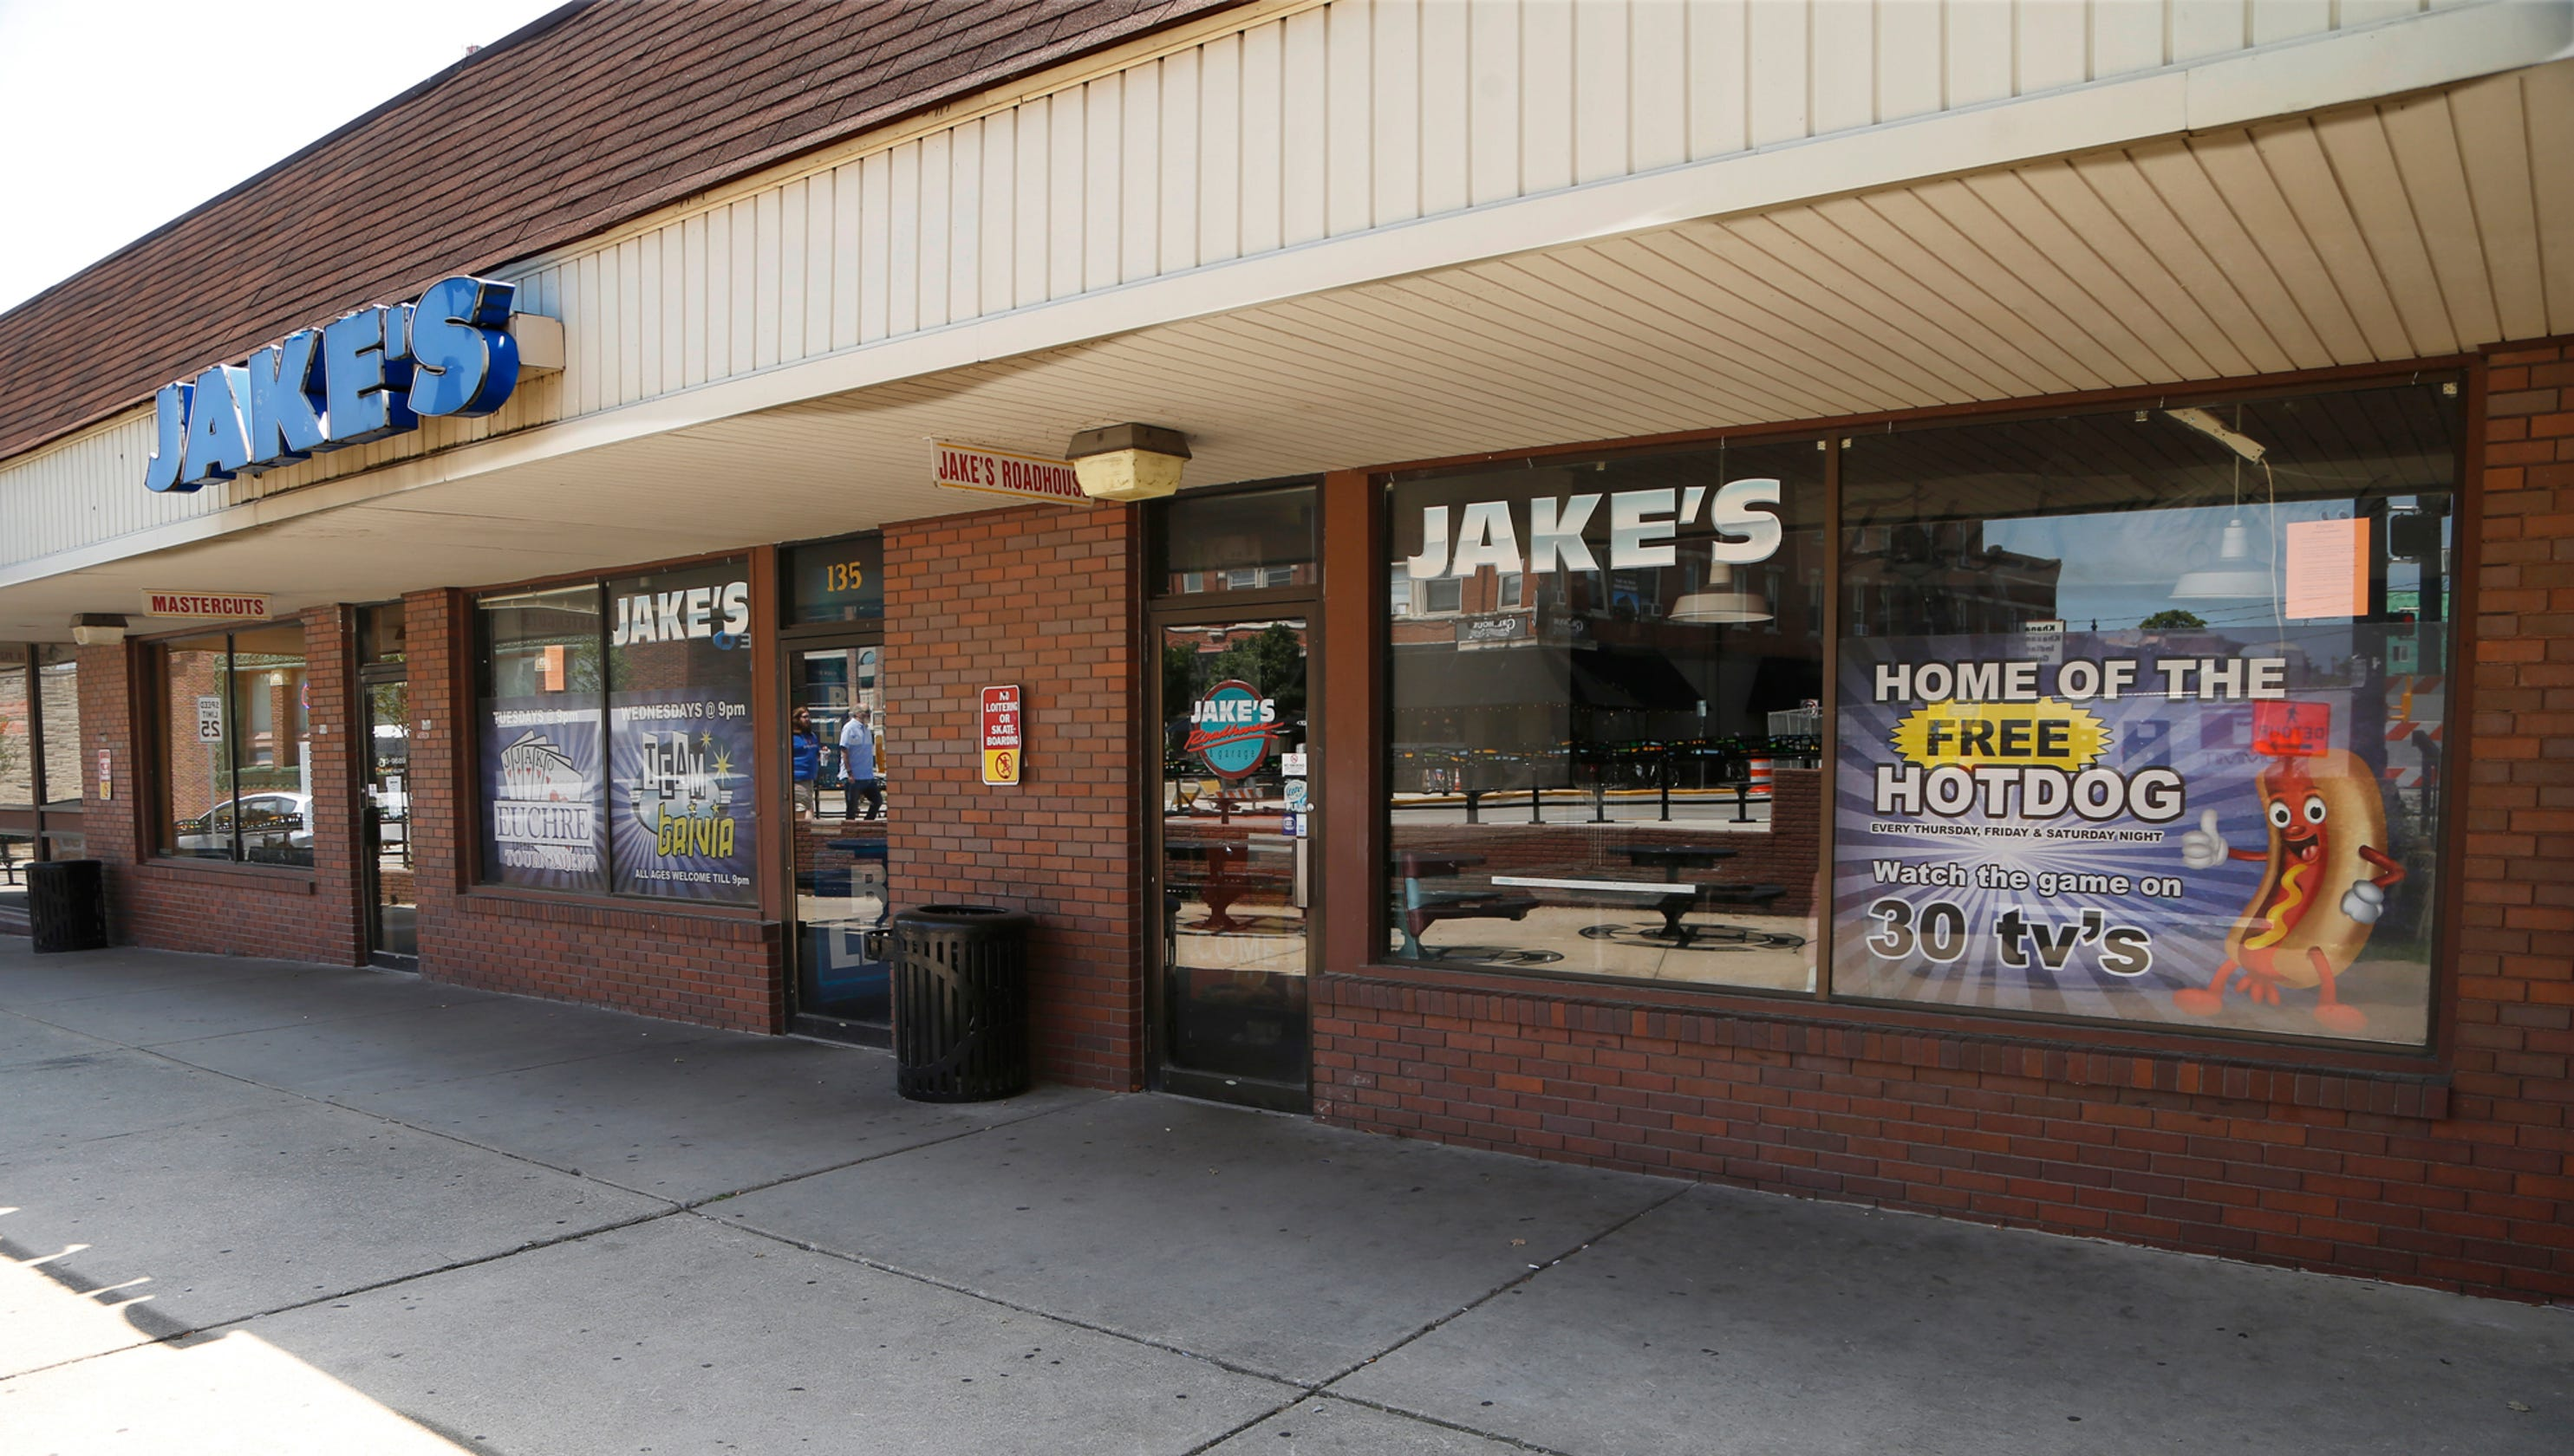 Bangert: Tears for Jake's, RIP memories for long-lost places